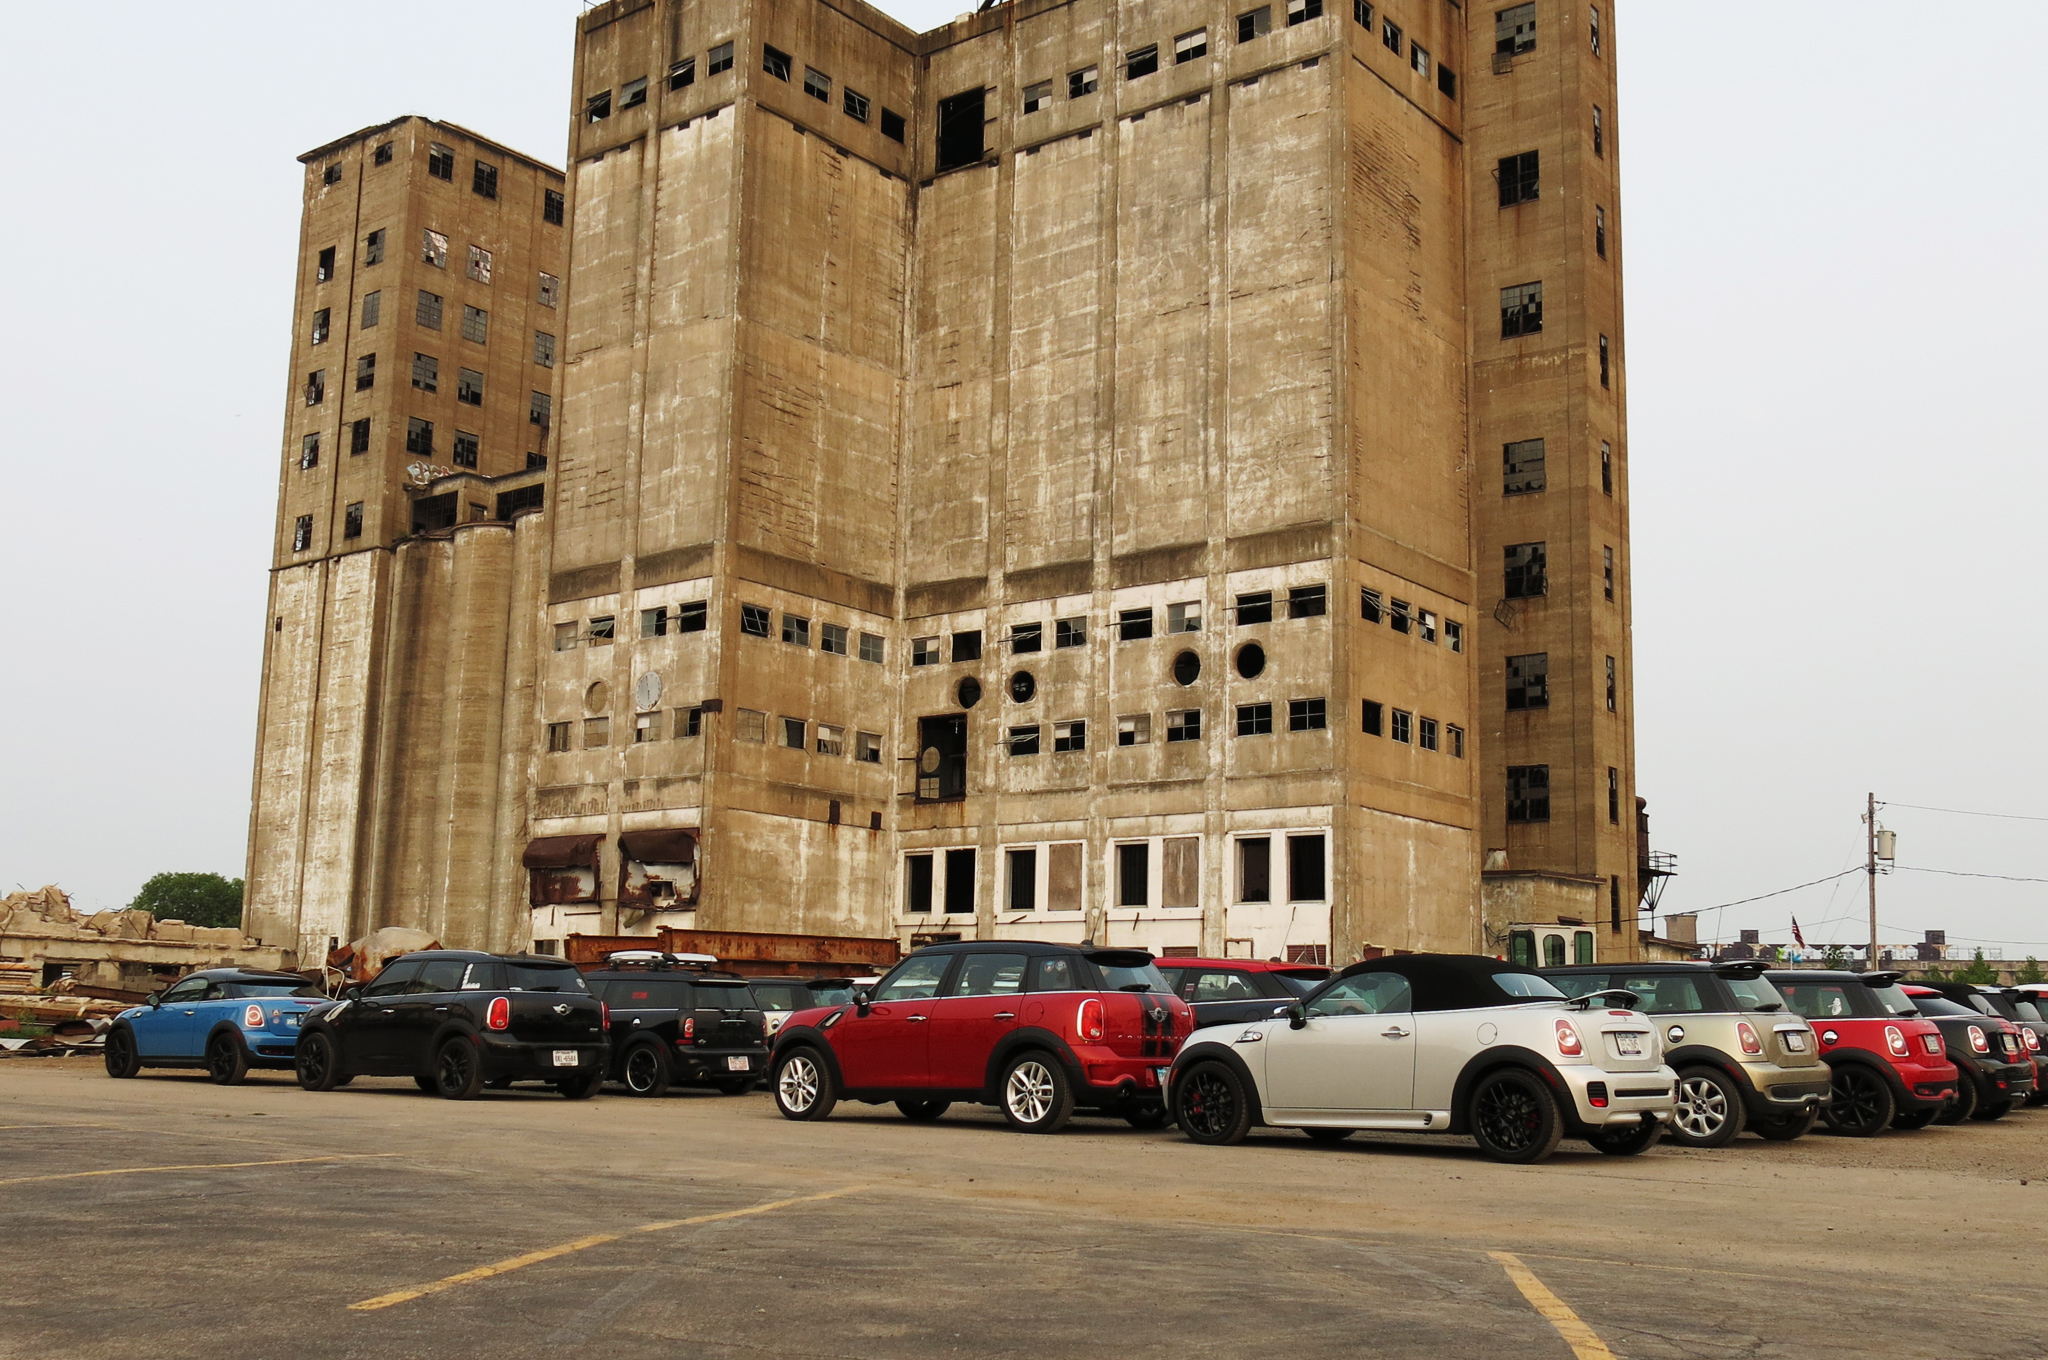 Parked for the British Invasion Party at the historic grain silos in Buffalo, NY.